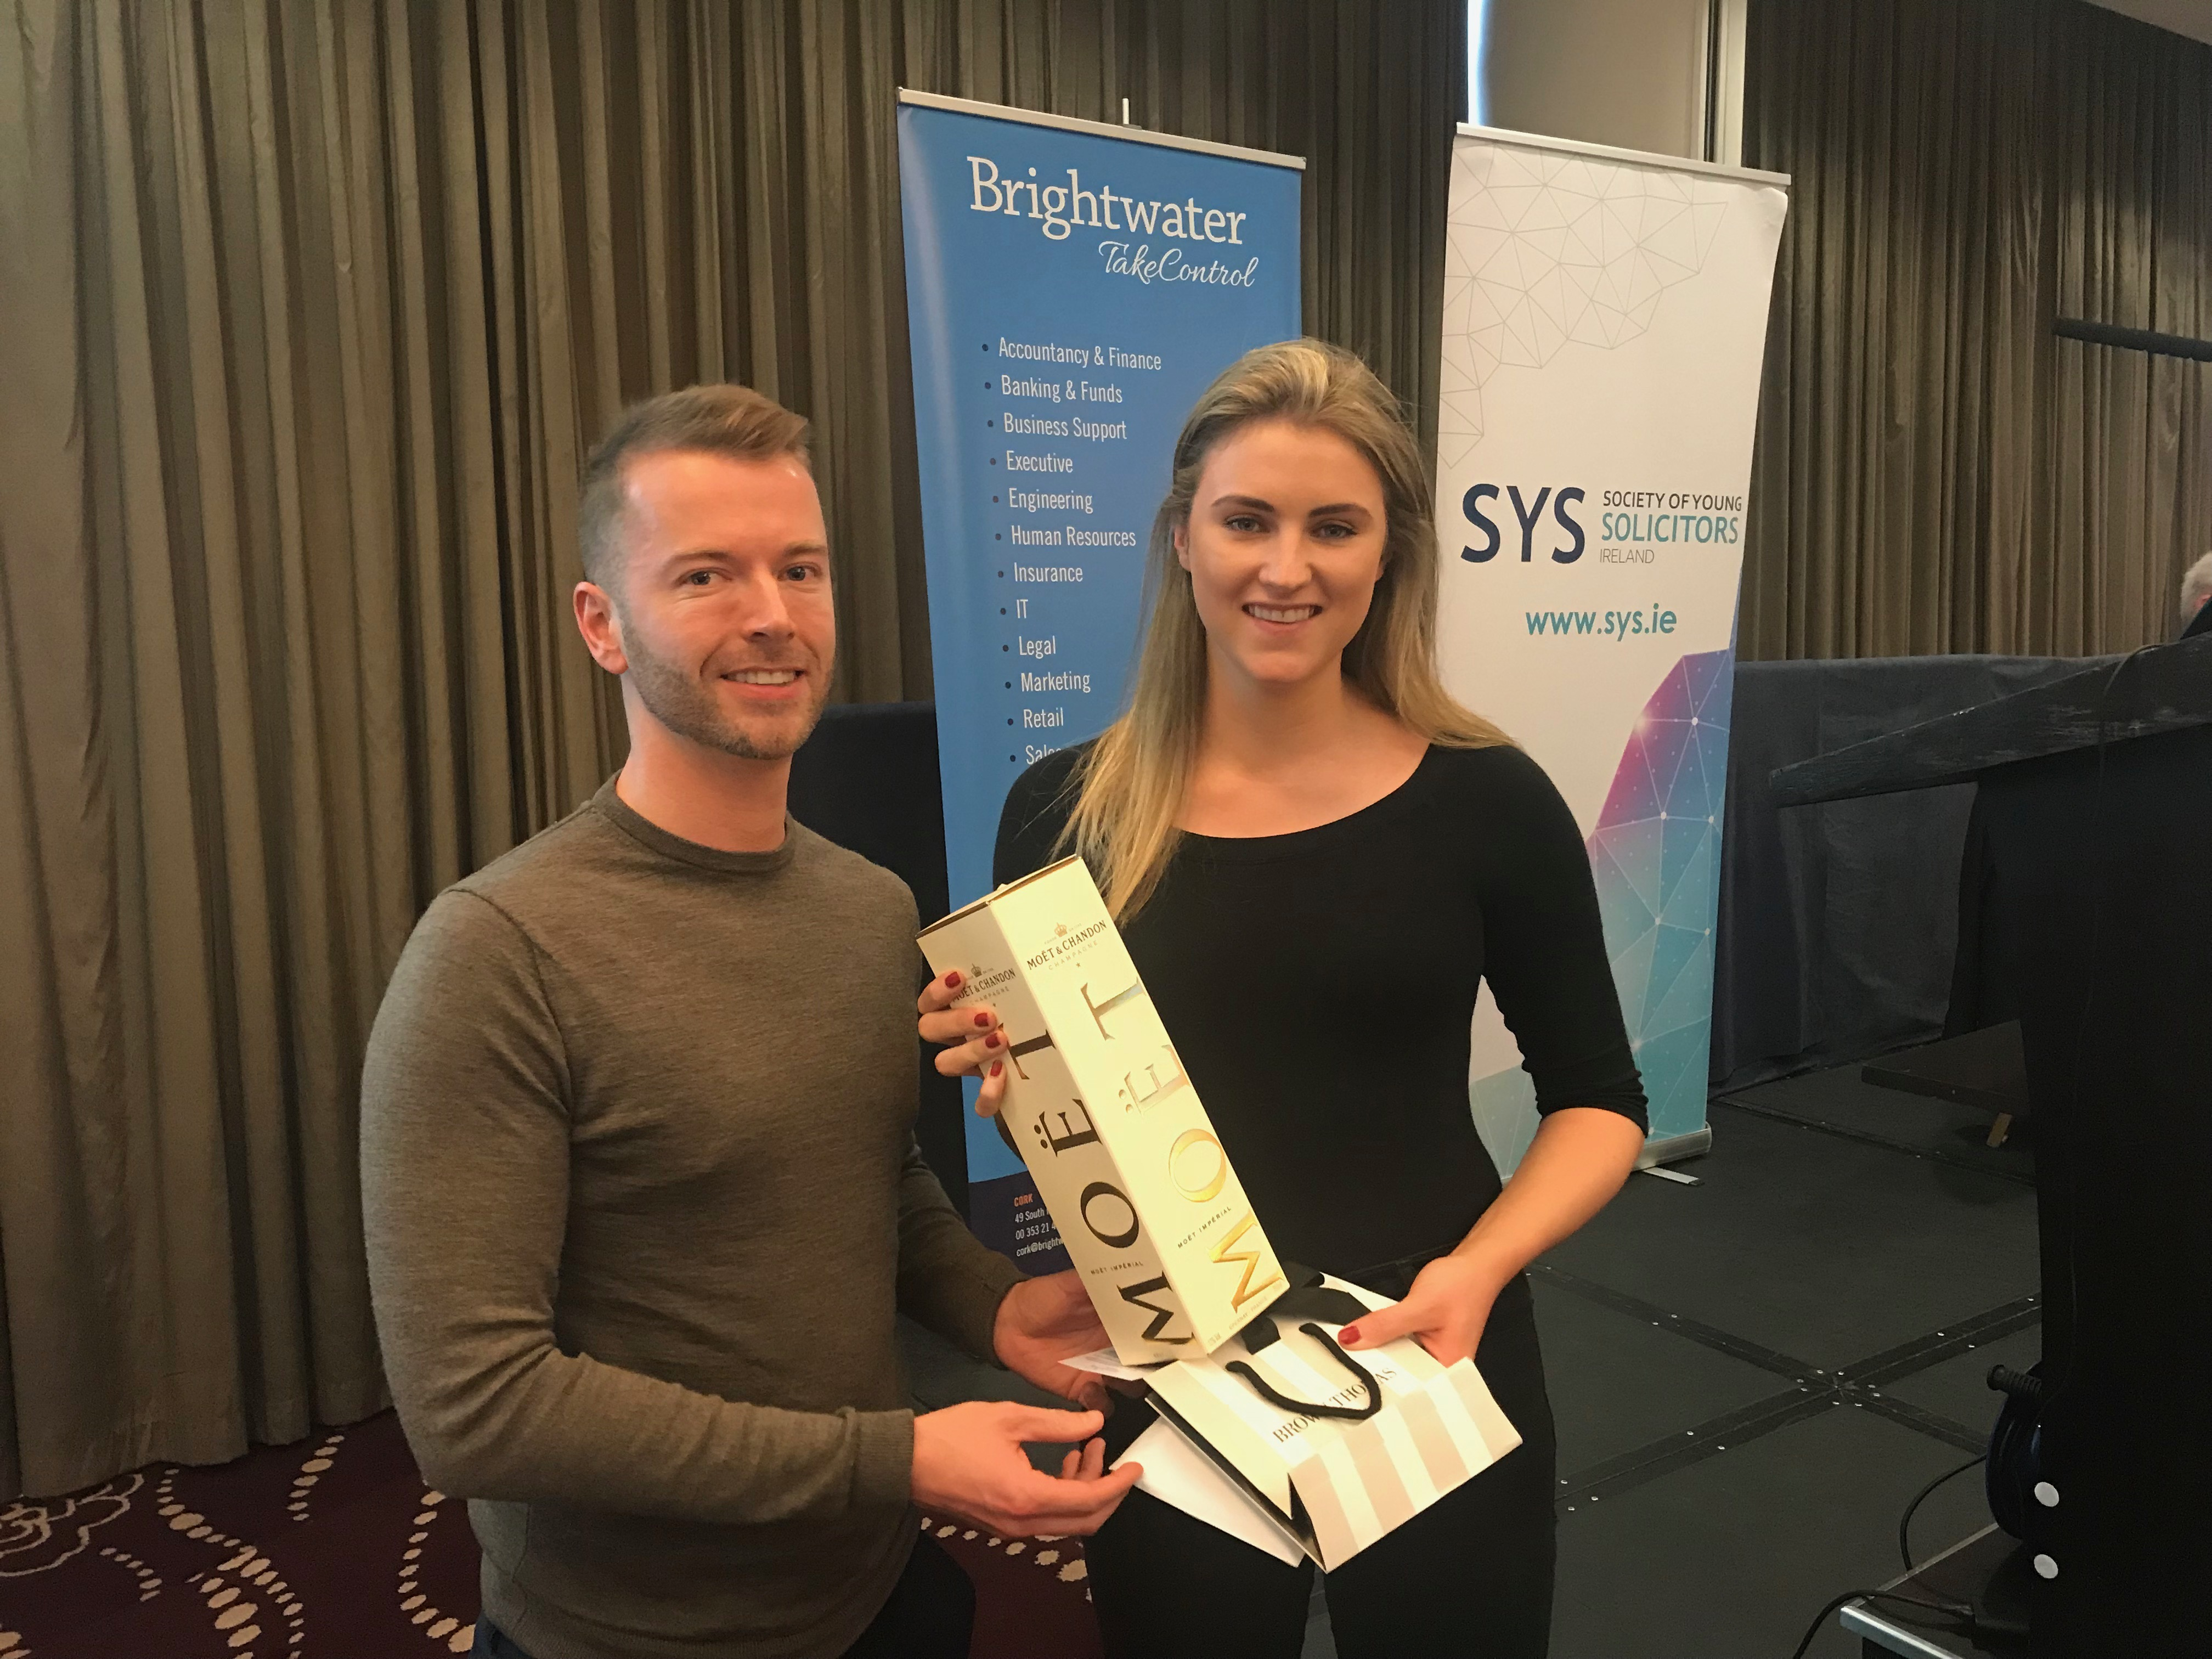 SYS Brightwater Prize winner